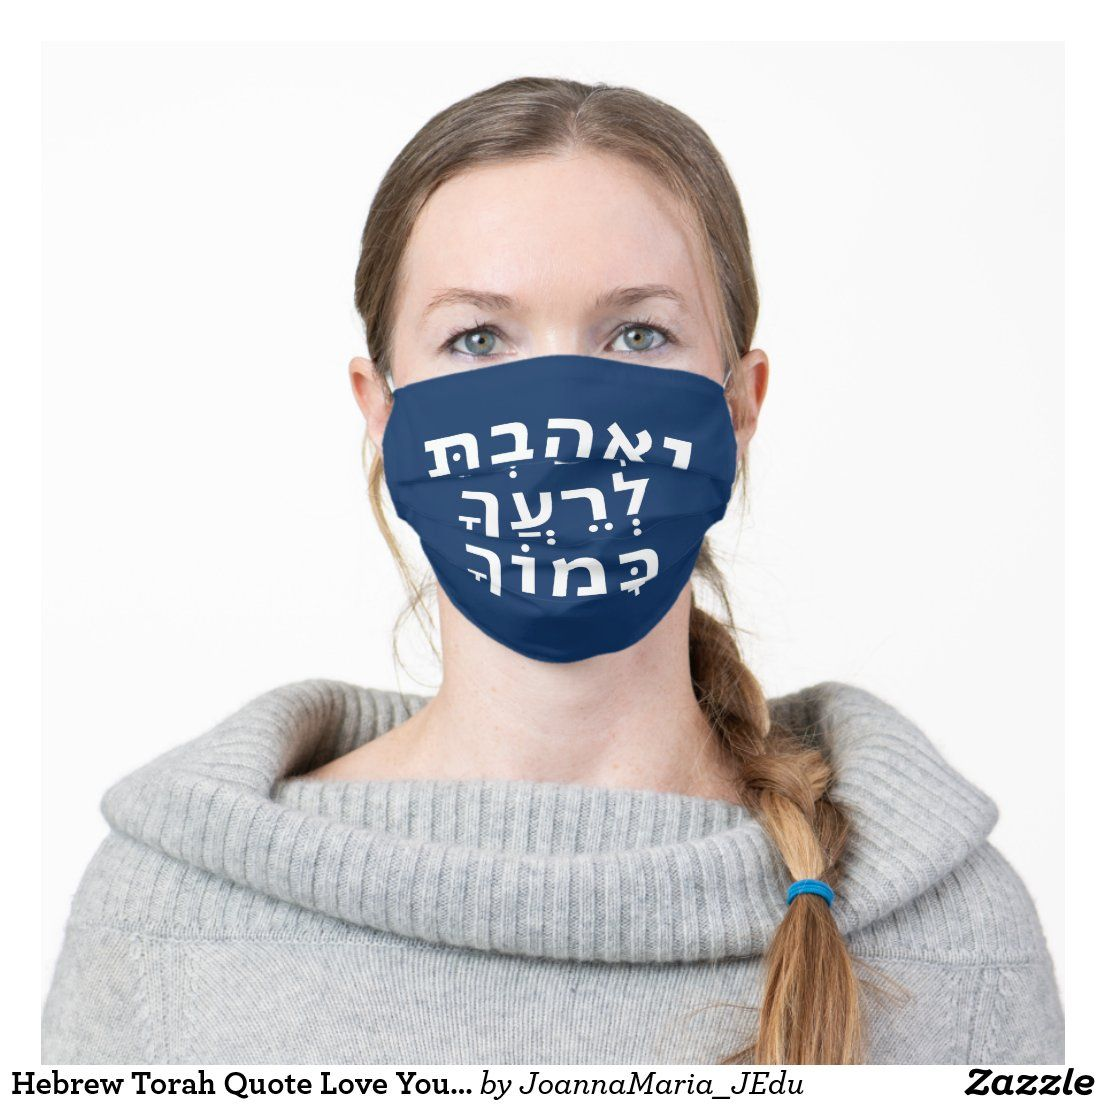 Hebrew Torah Quote Love Your Fellow as Yourself Cloth Face Mask | More @ modernjudaica.online | Hebrew Love Your Fellow As Yourself Black Cotton Face Mask #Love #Torah #Bible #Inspiring #BiblicalQuote #LoveYourNeighbor #LoveYourFellow #Hebrew #typography #words #JewishGift #Jewish #Judaica #Justice #Facemask #Mask #HebrewFacemask #Health #Covid dsa